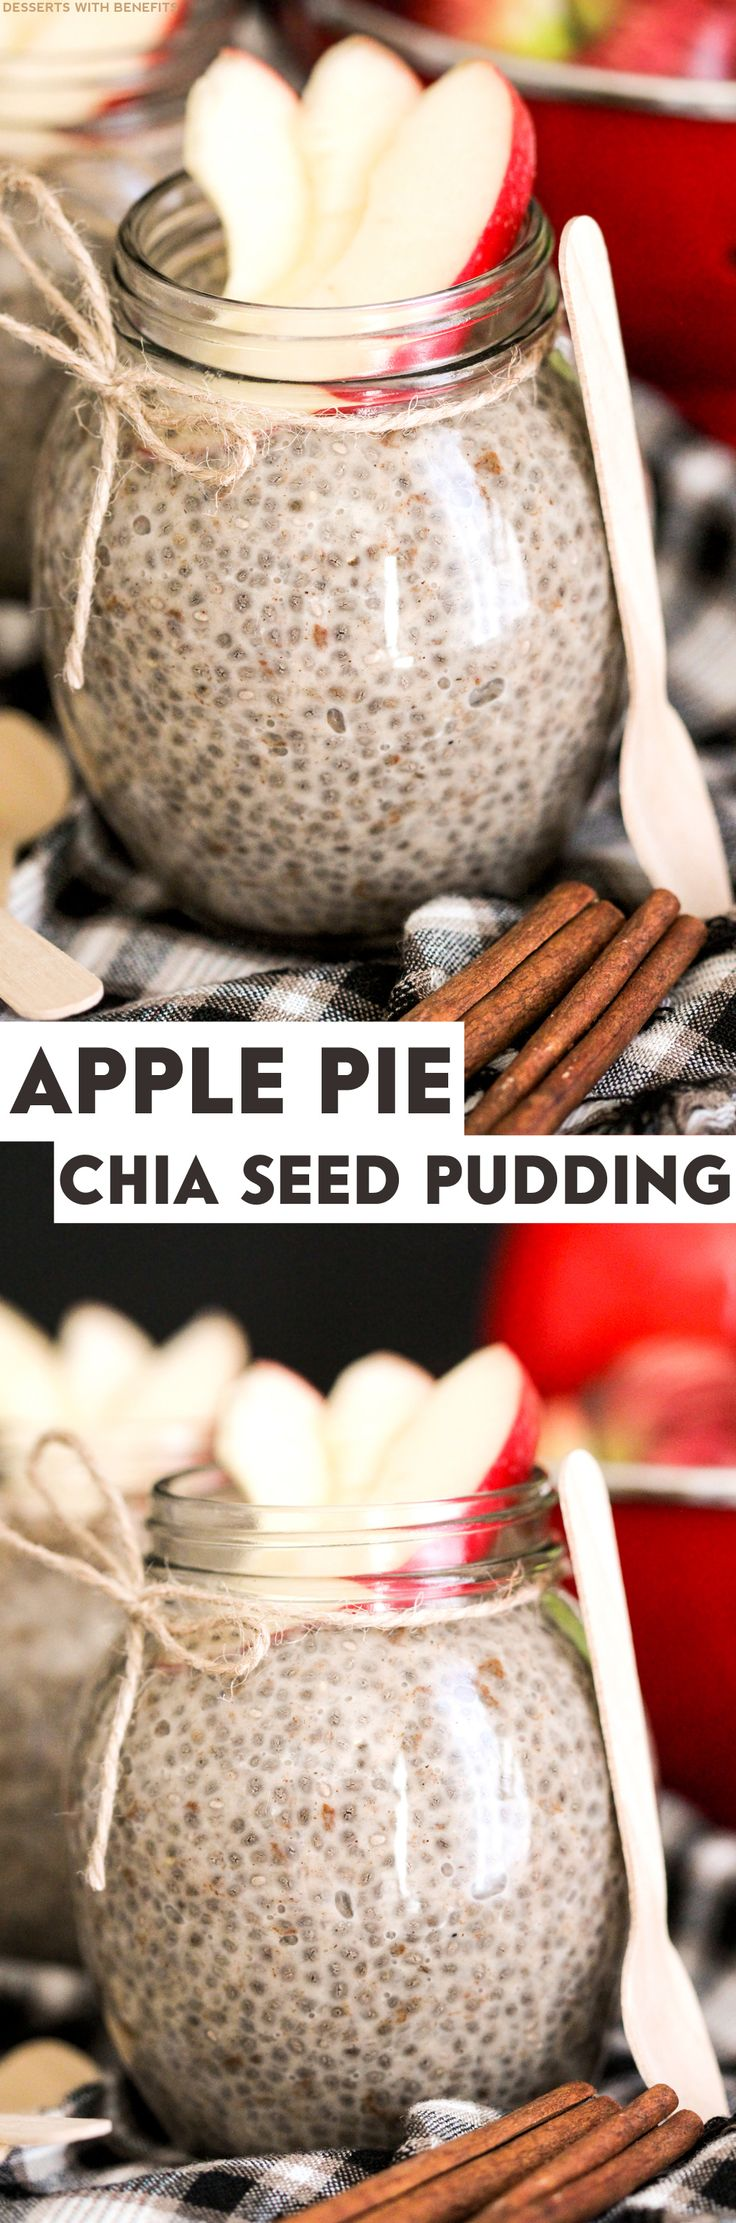 Healthy Apple Pie Chia Seed Pudding (refined sugar free, low fat, low calorie, high fiber, gluten free, dairy free, vegan) - Healthy Dessert Recipes at Desserts with Benefits